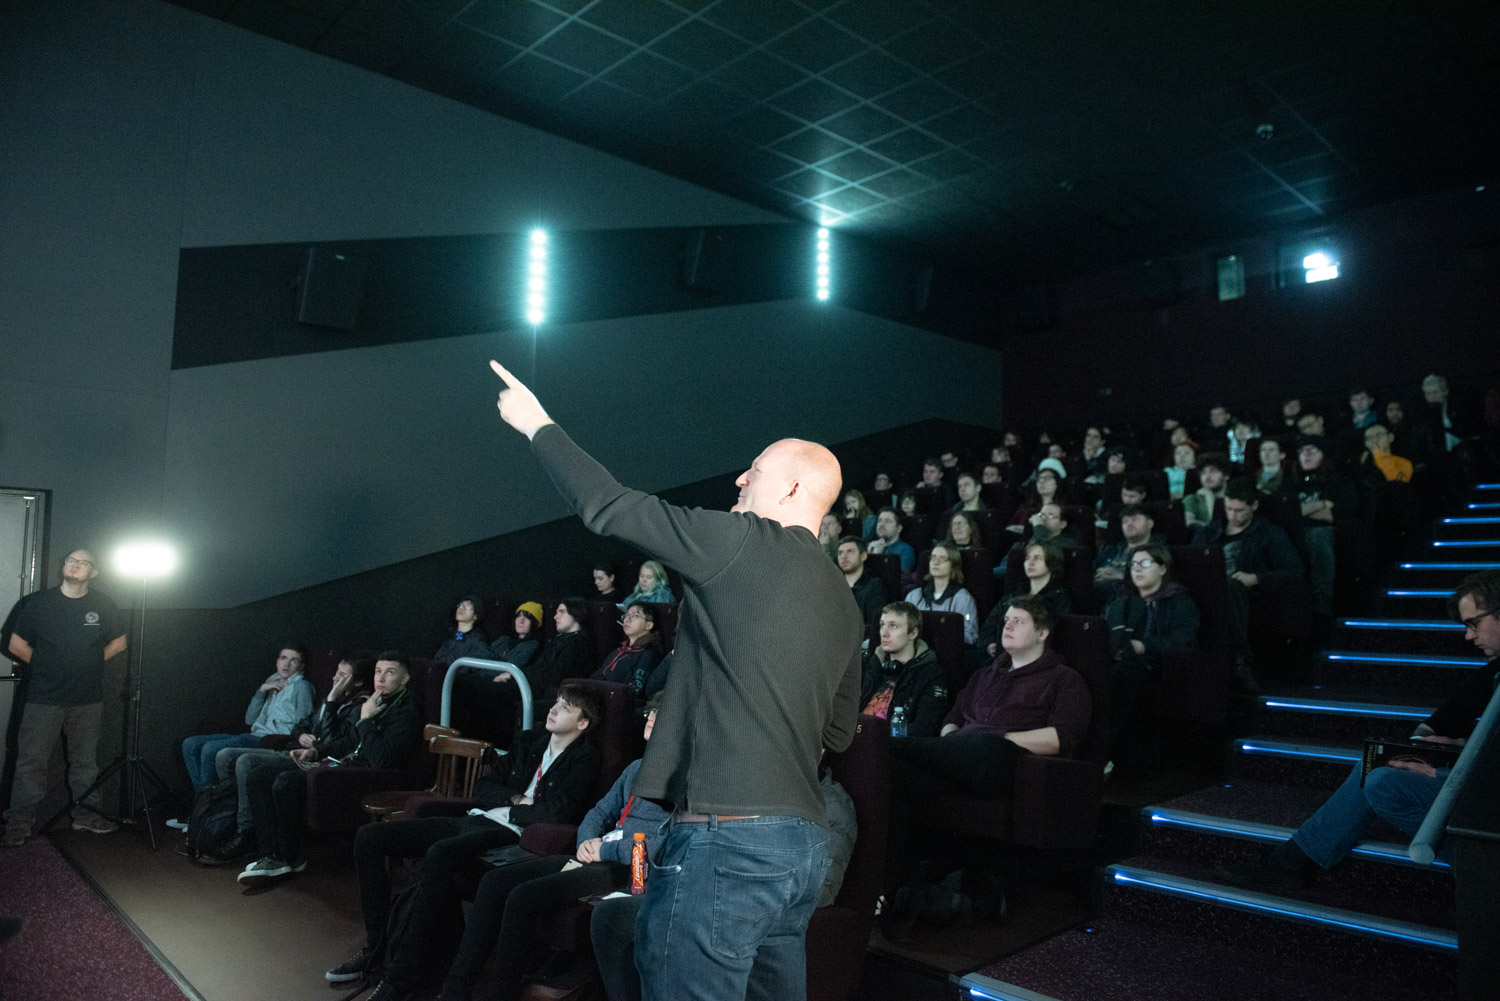 Jon Turner of Kilogramme Studio addressing the audience in cinema, pointing to something on the screen